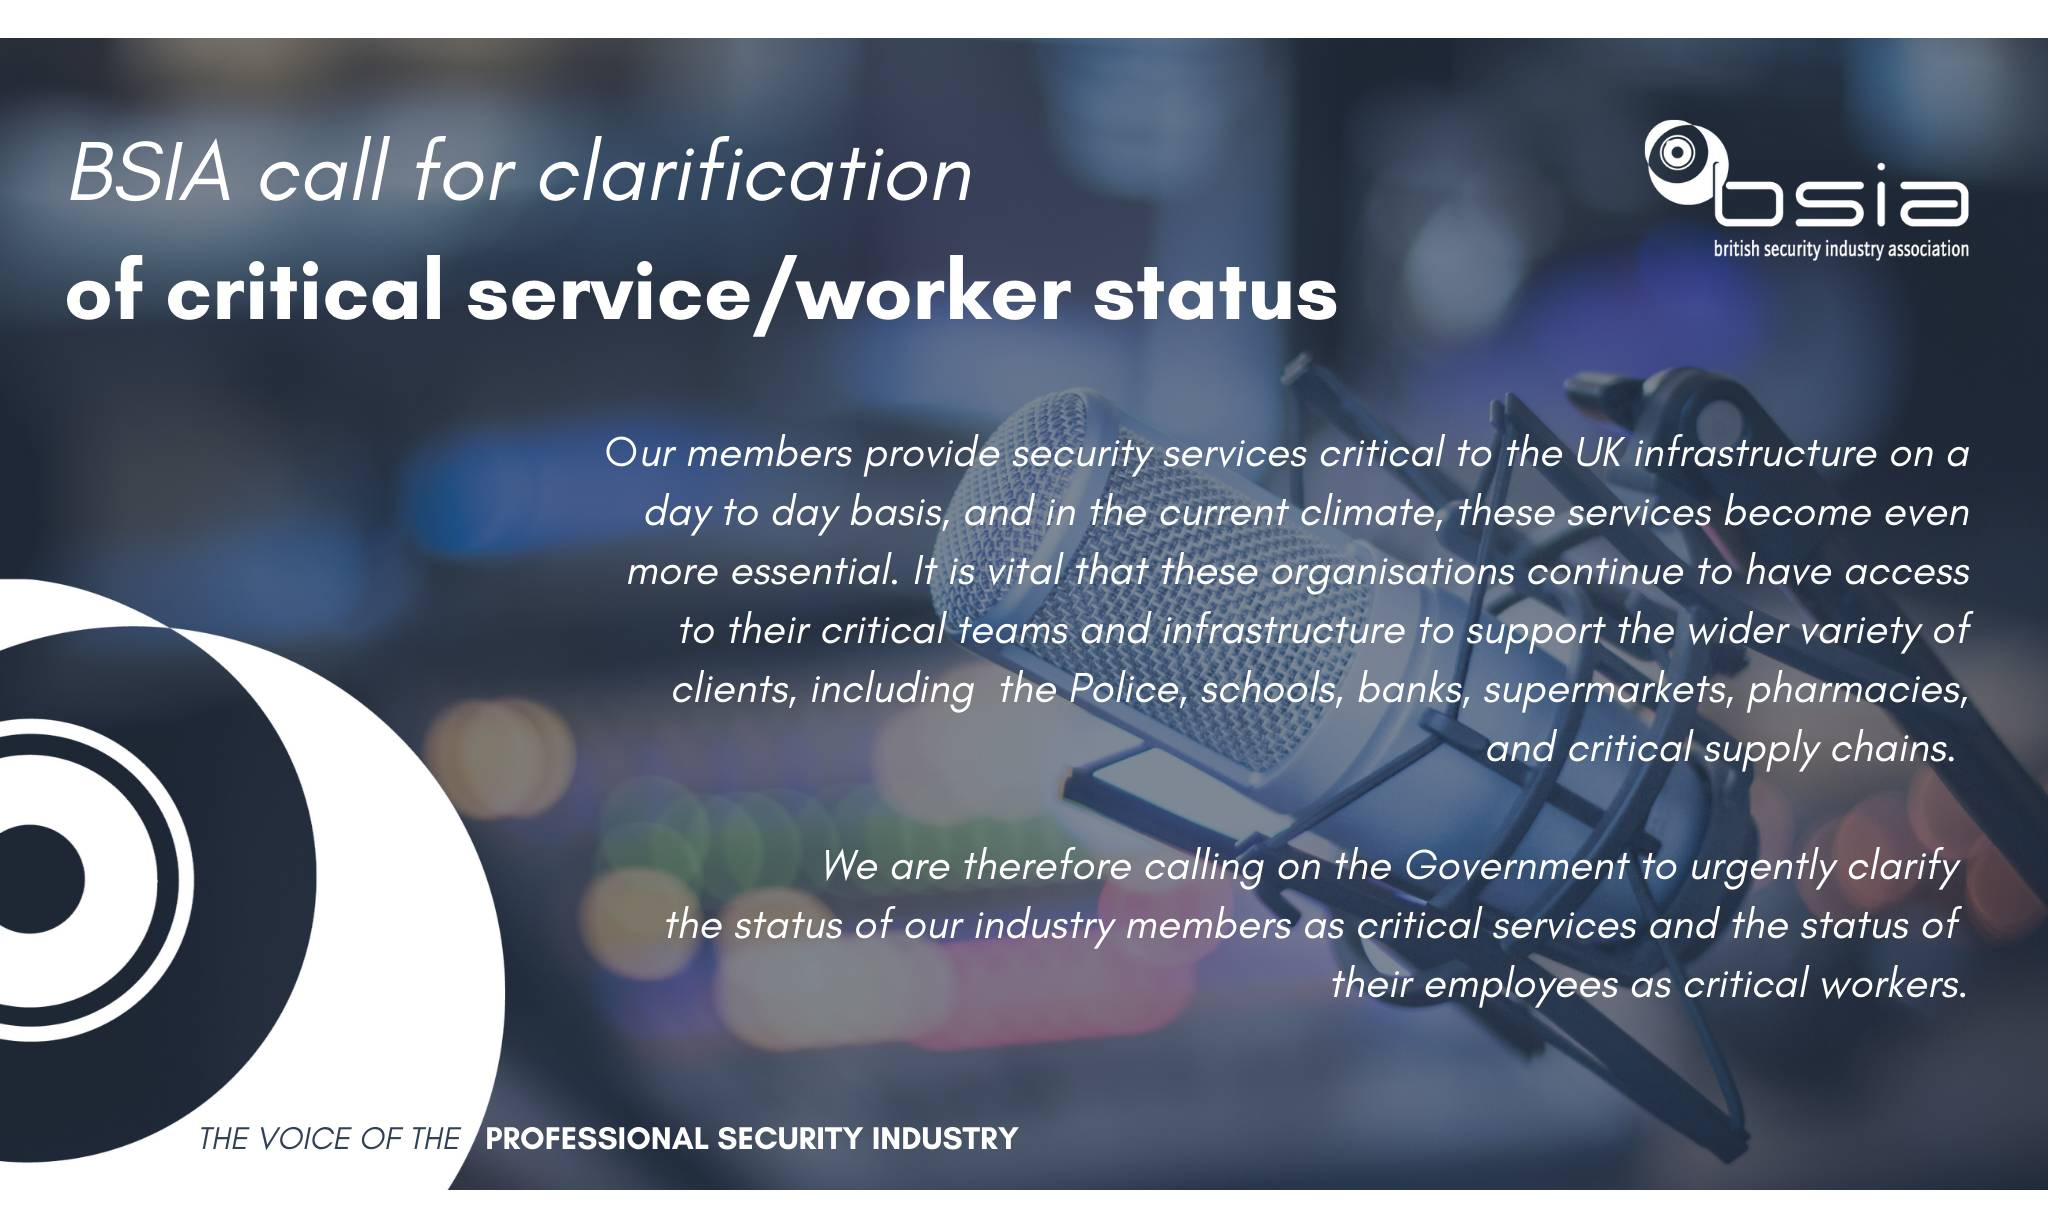 BSIA to call on government to clarify key worker status as concern in the security industry grows